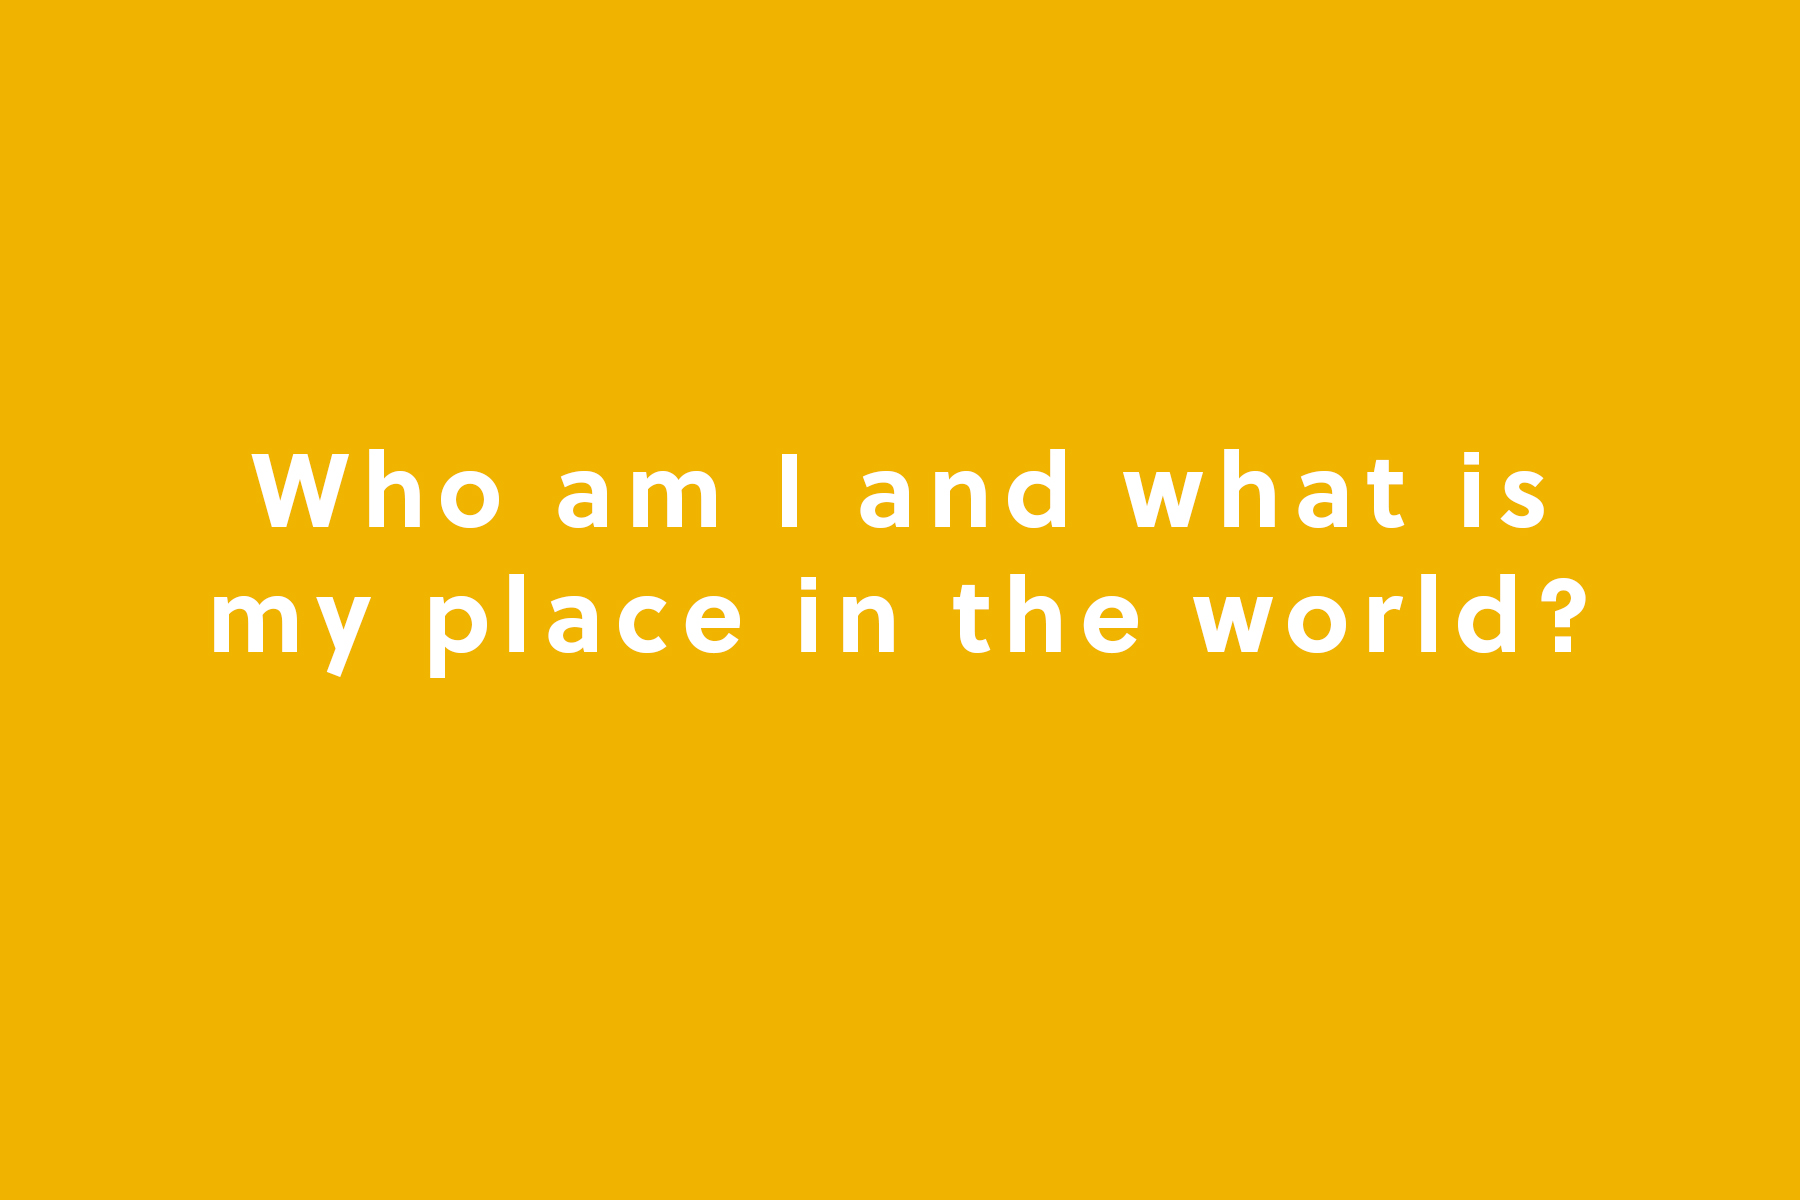 Who am I and what is my place in the world?